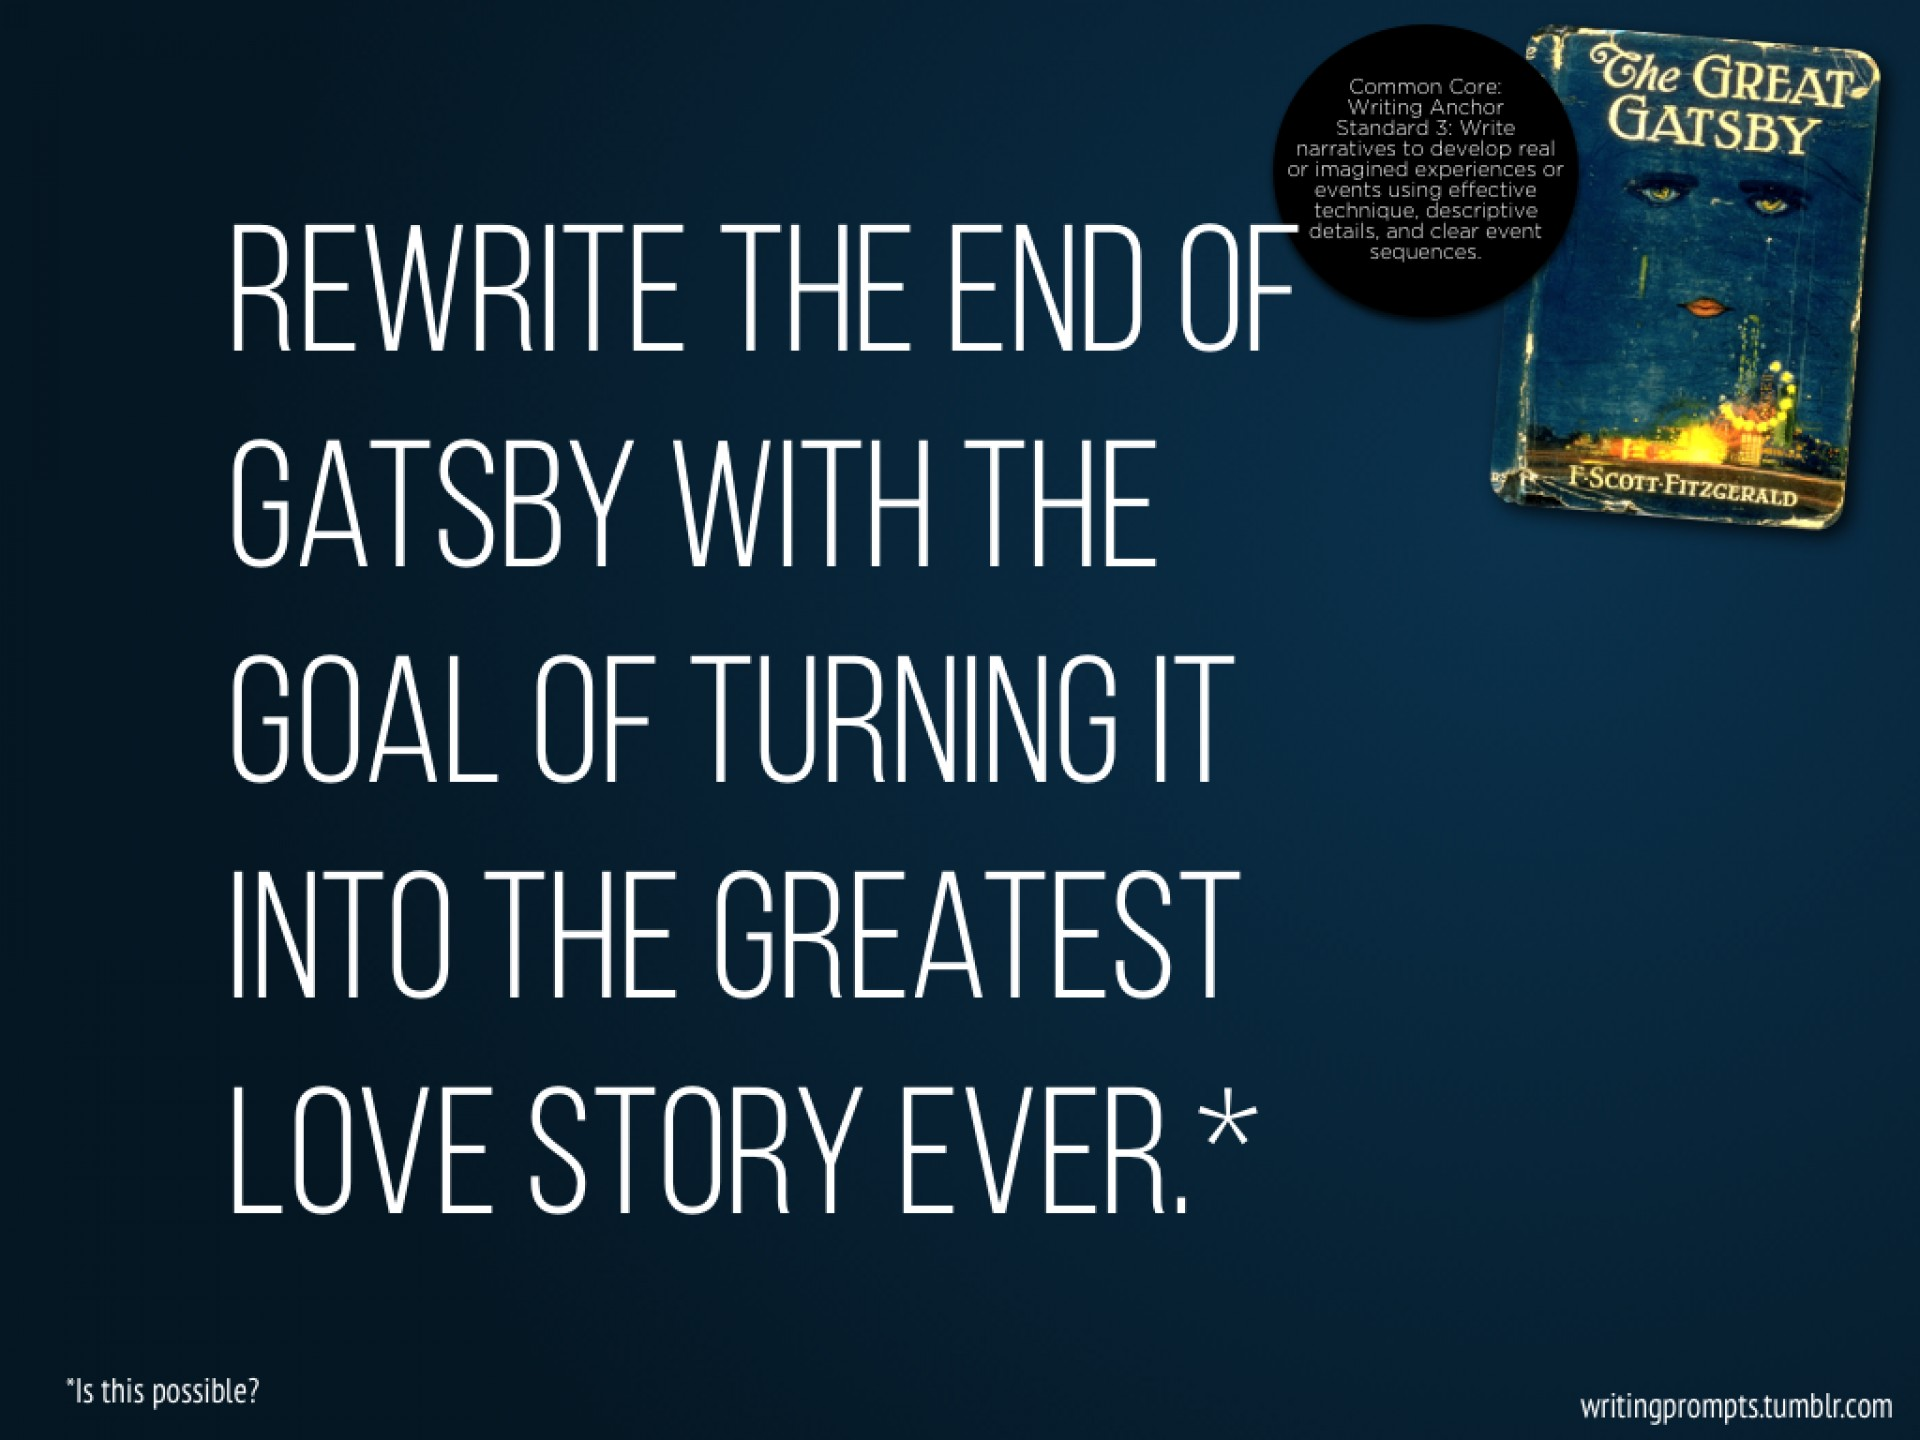 011 Essay Example The Great Gatsby Beautiful Prompts Chapter 3 Questions Writing 1920